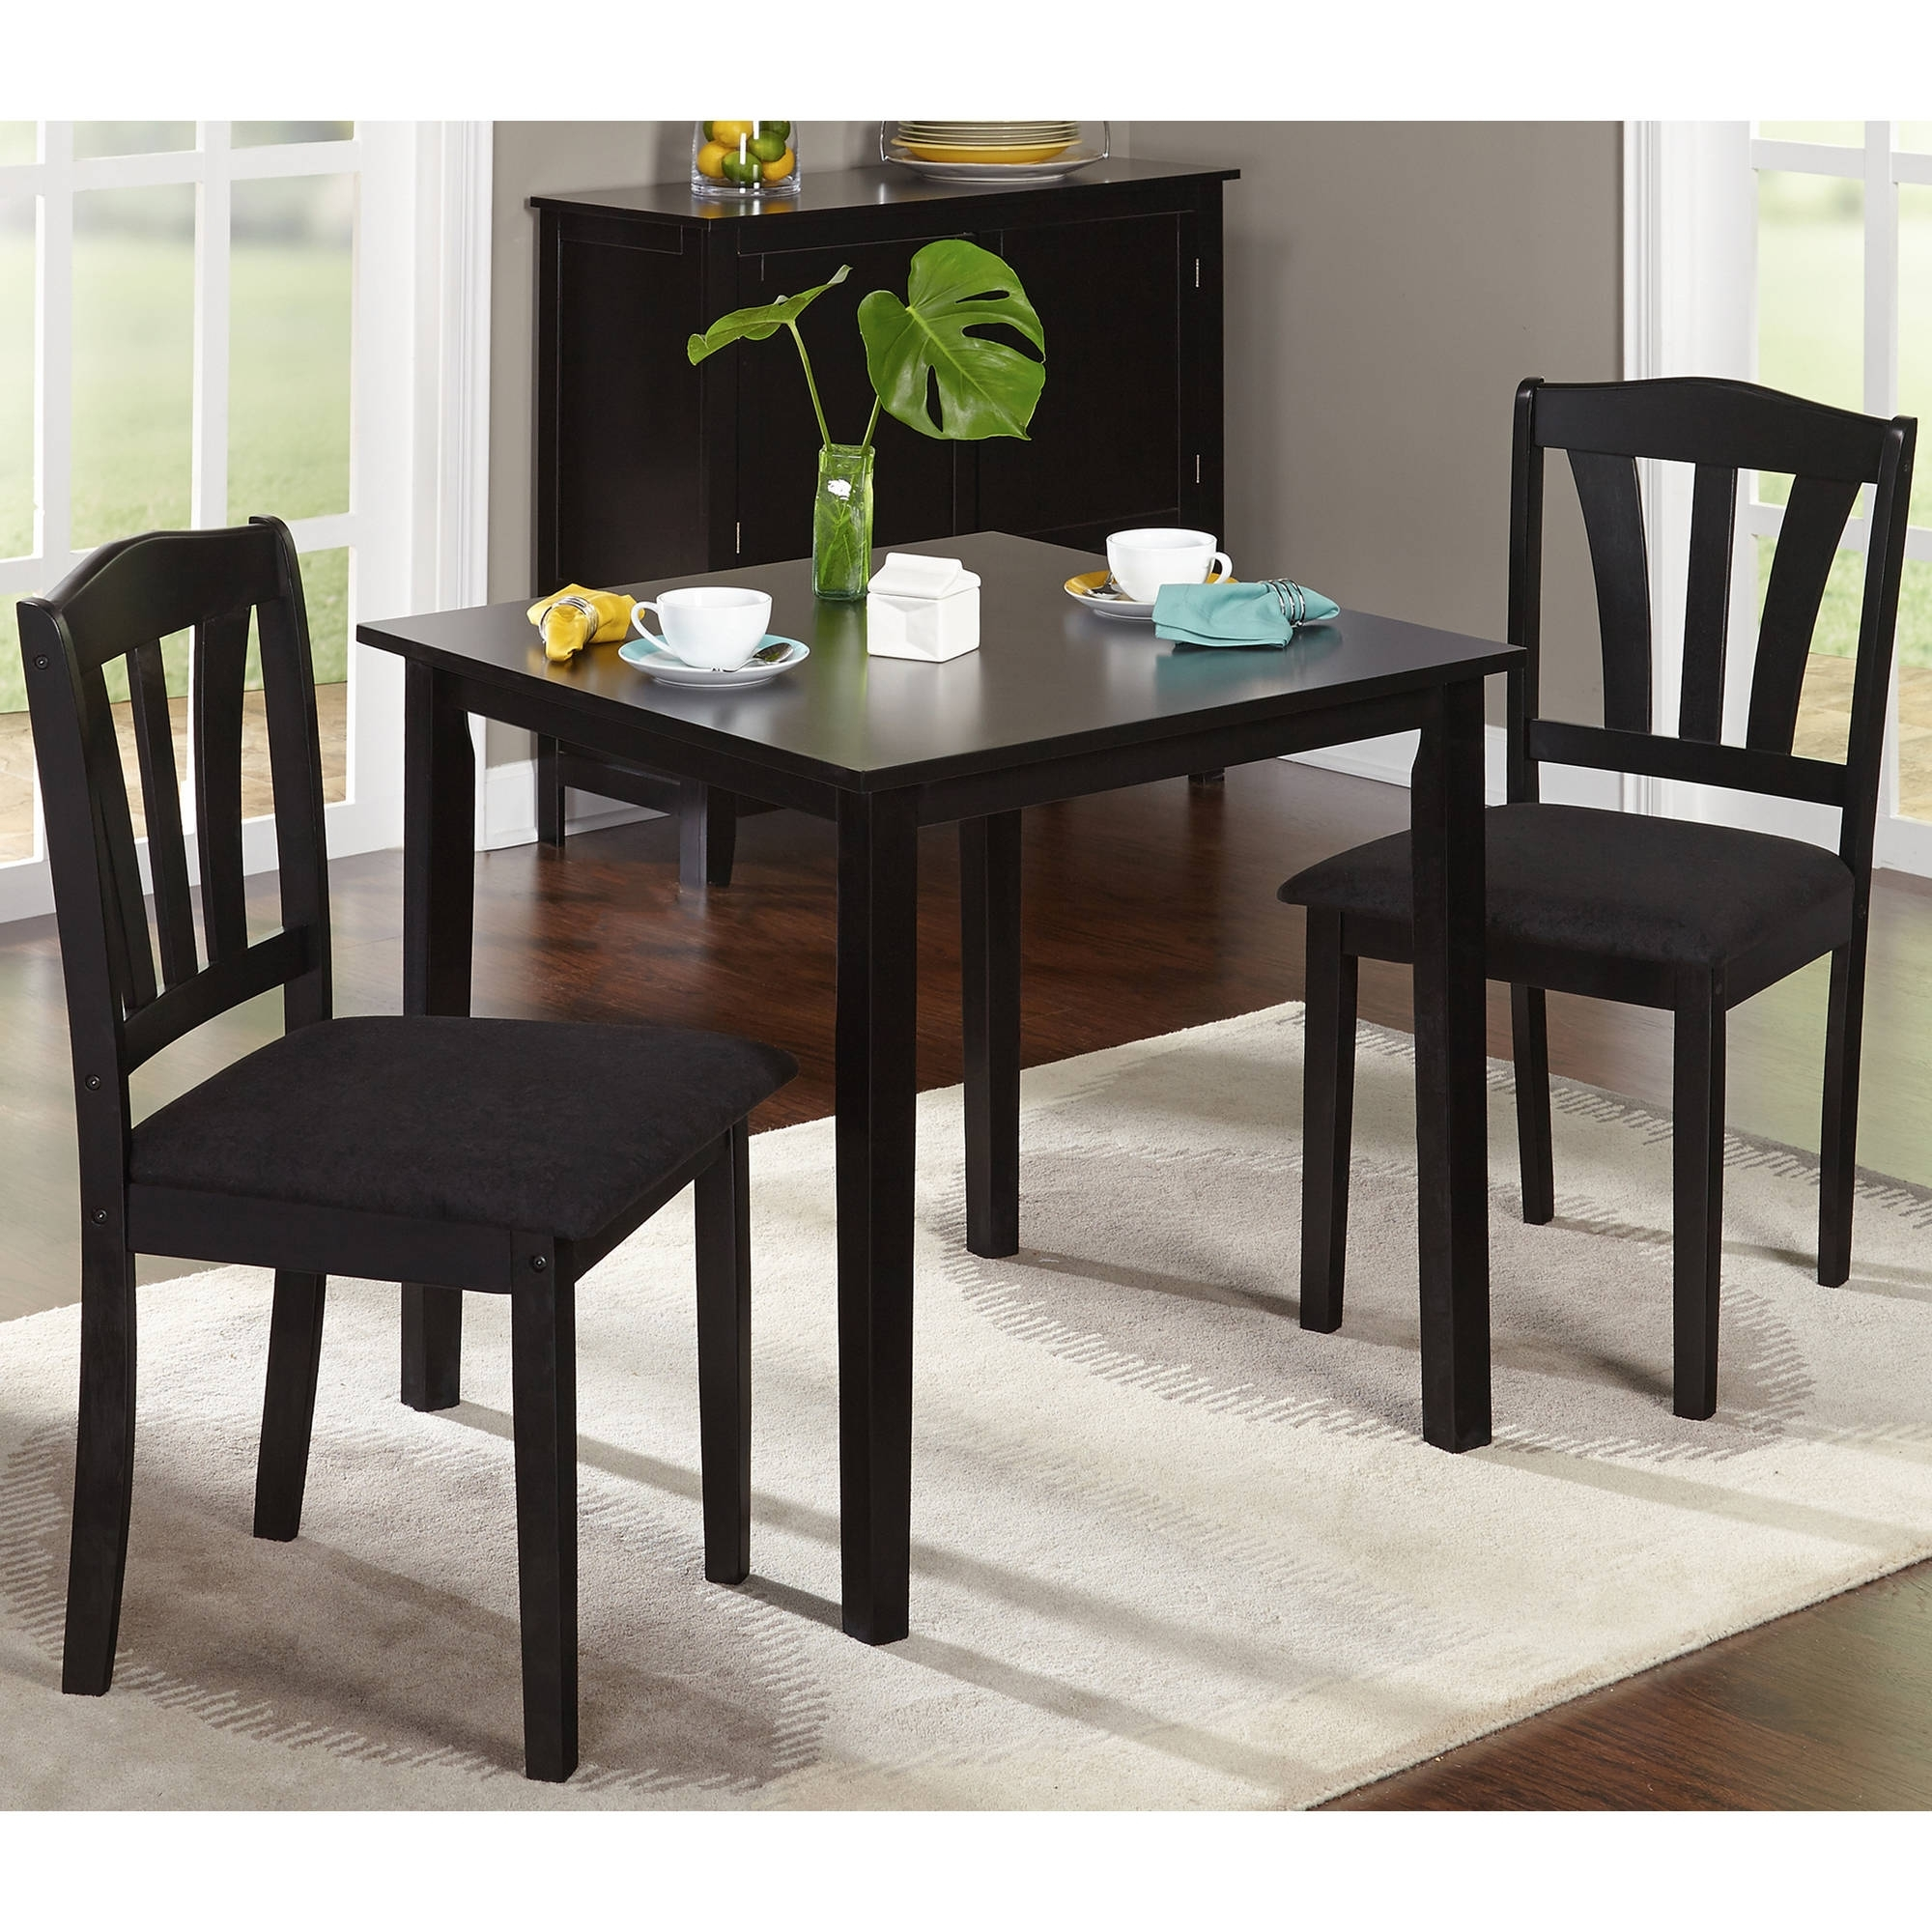 Well Known Metropolitan 3 Piece Dining Set, Multiple Finishes – Walmart Intended For Dining Sets (View 6 of 25)